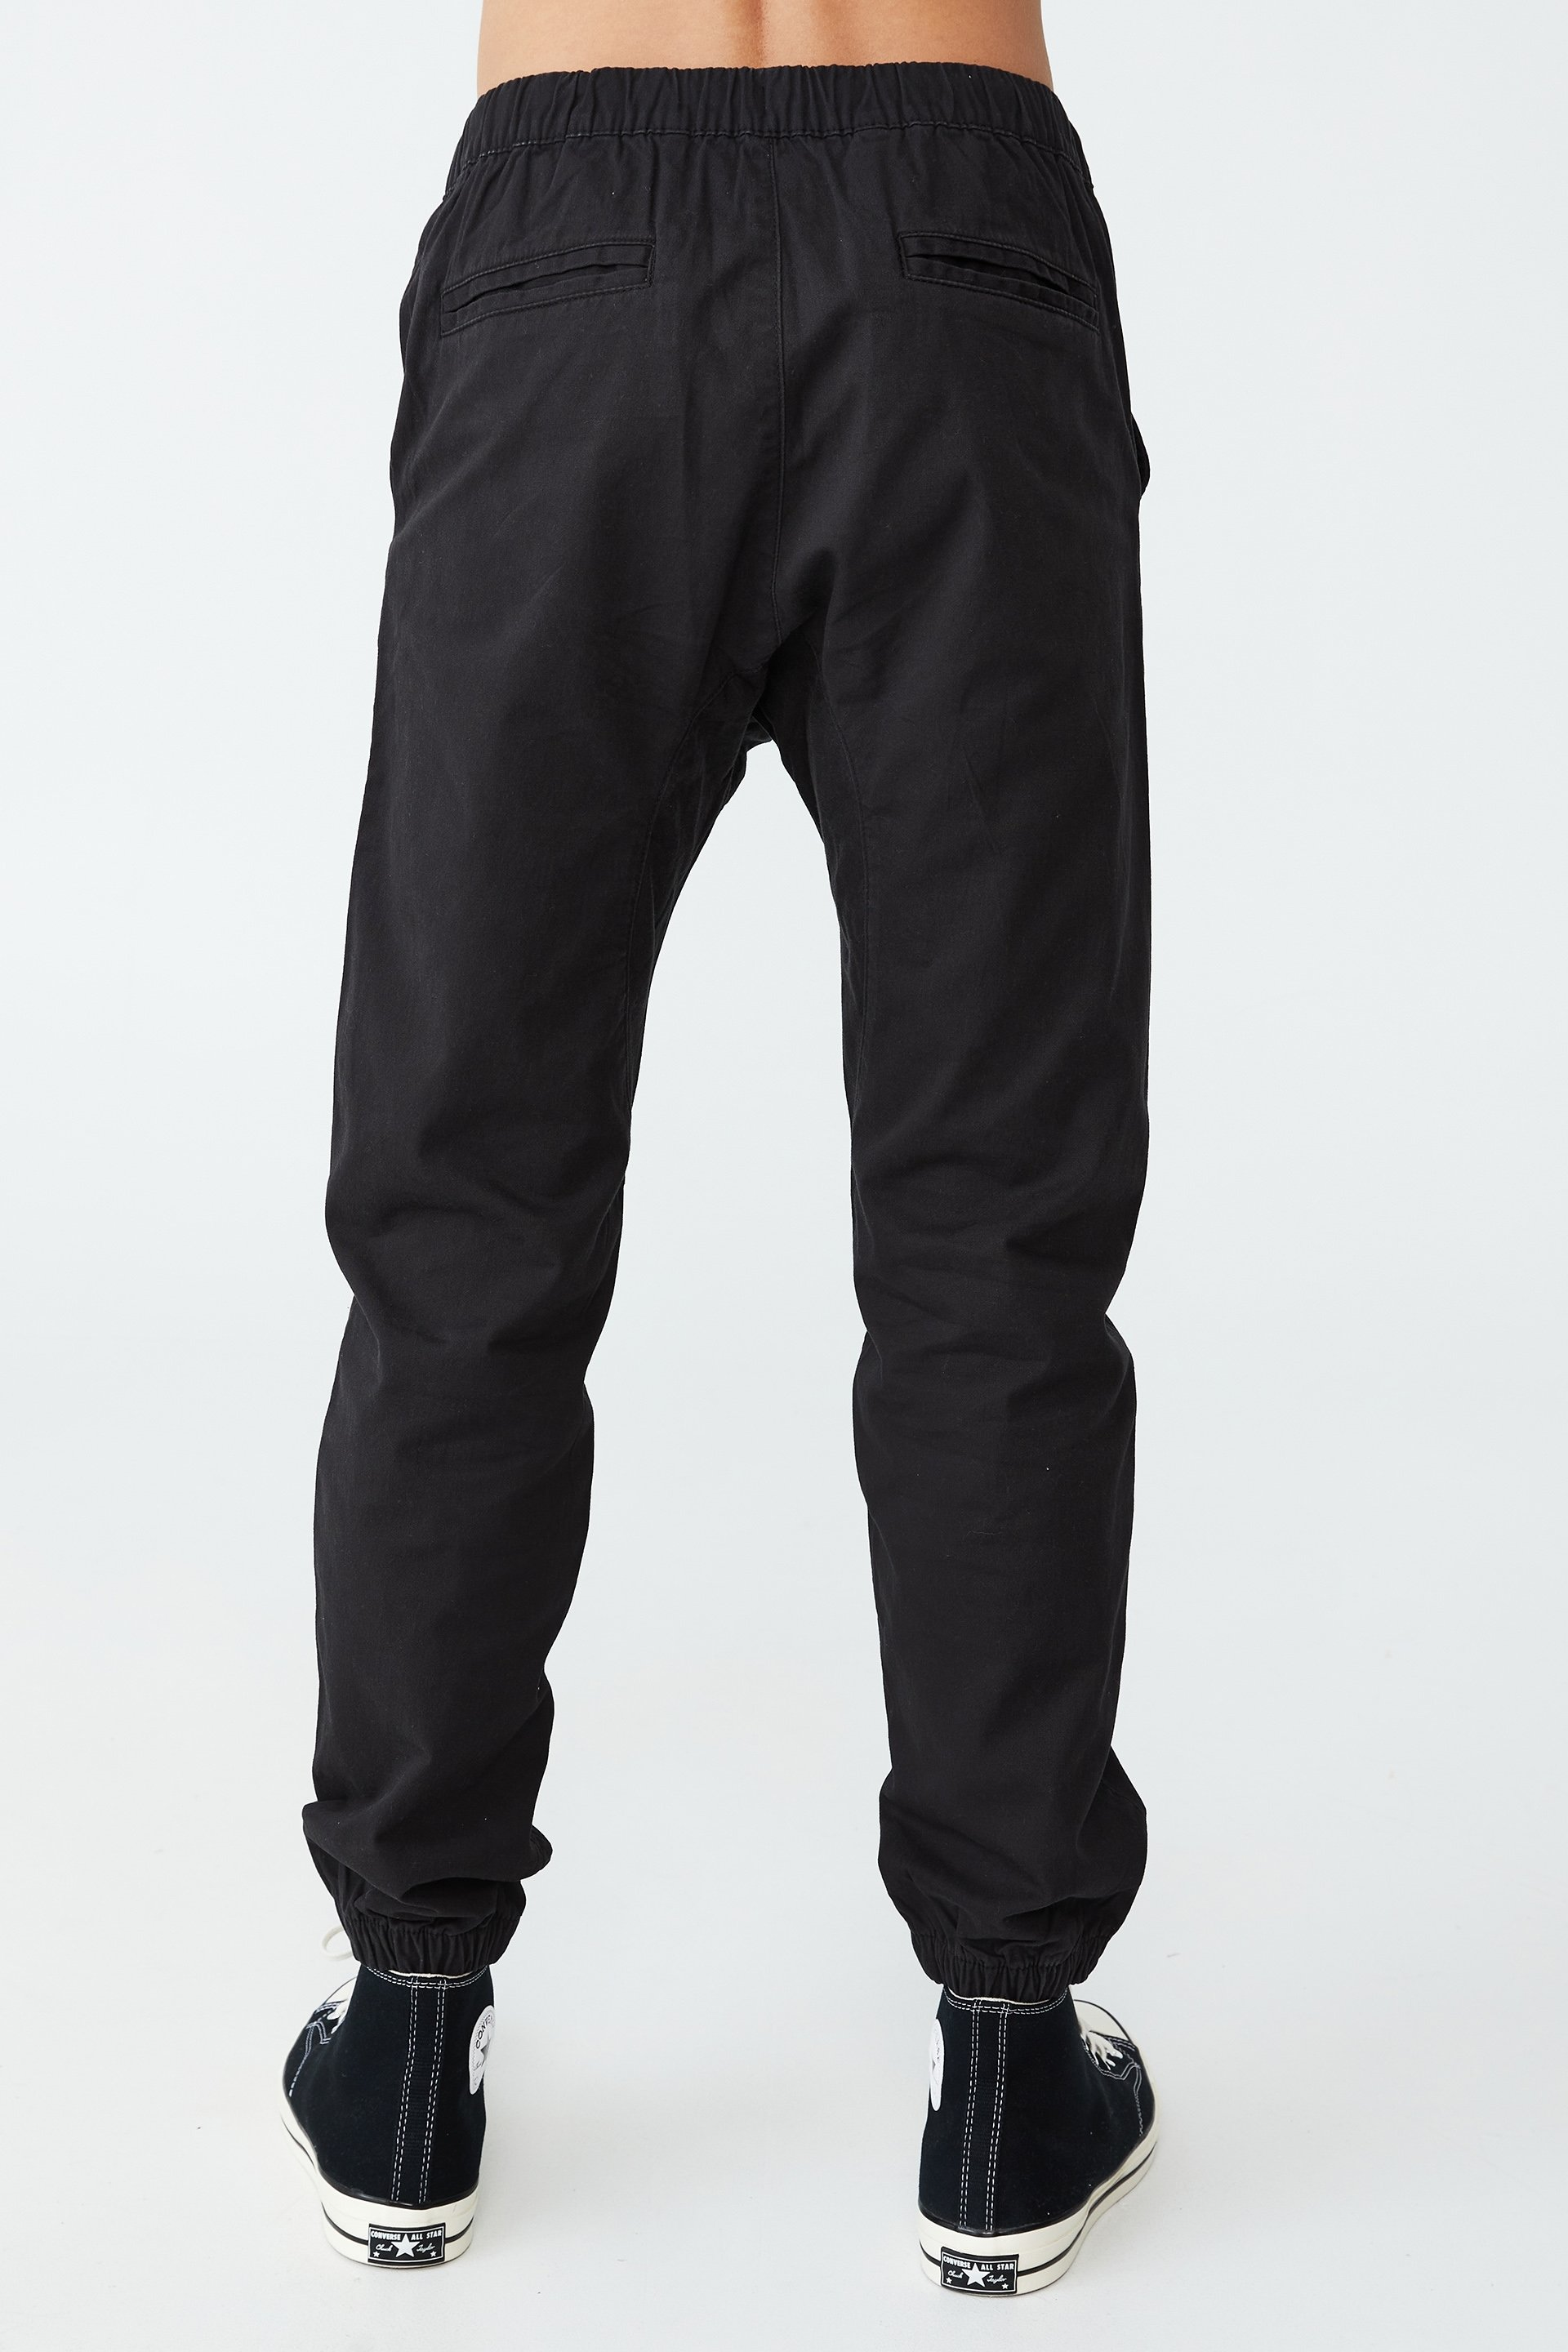 These hardy Sweats made from ACTIVE WEAR Campcloth has a brushed inner-face % COTTON